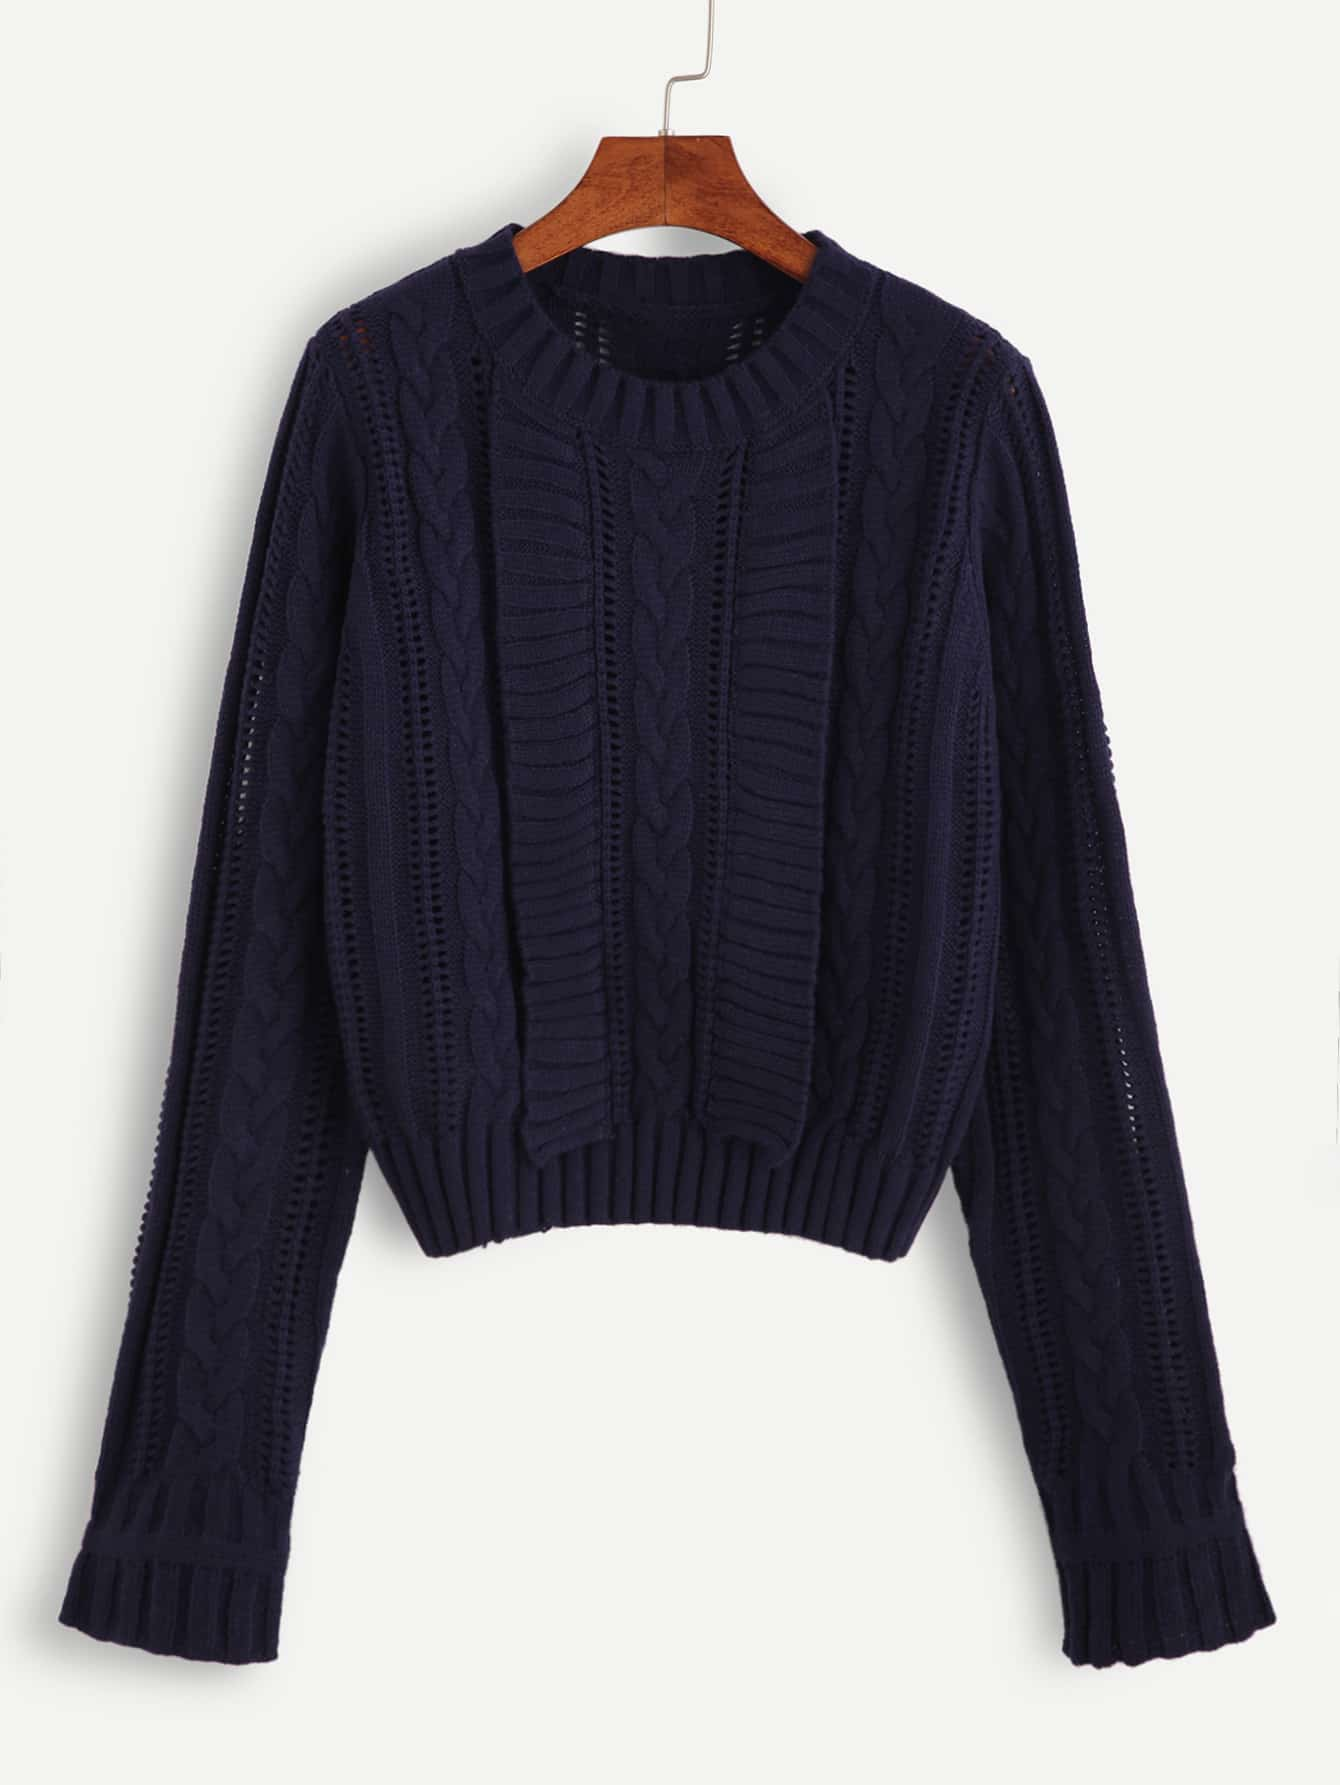 Navy Hollow Out Cable Knit Sweater sweater160929104